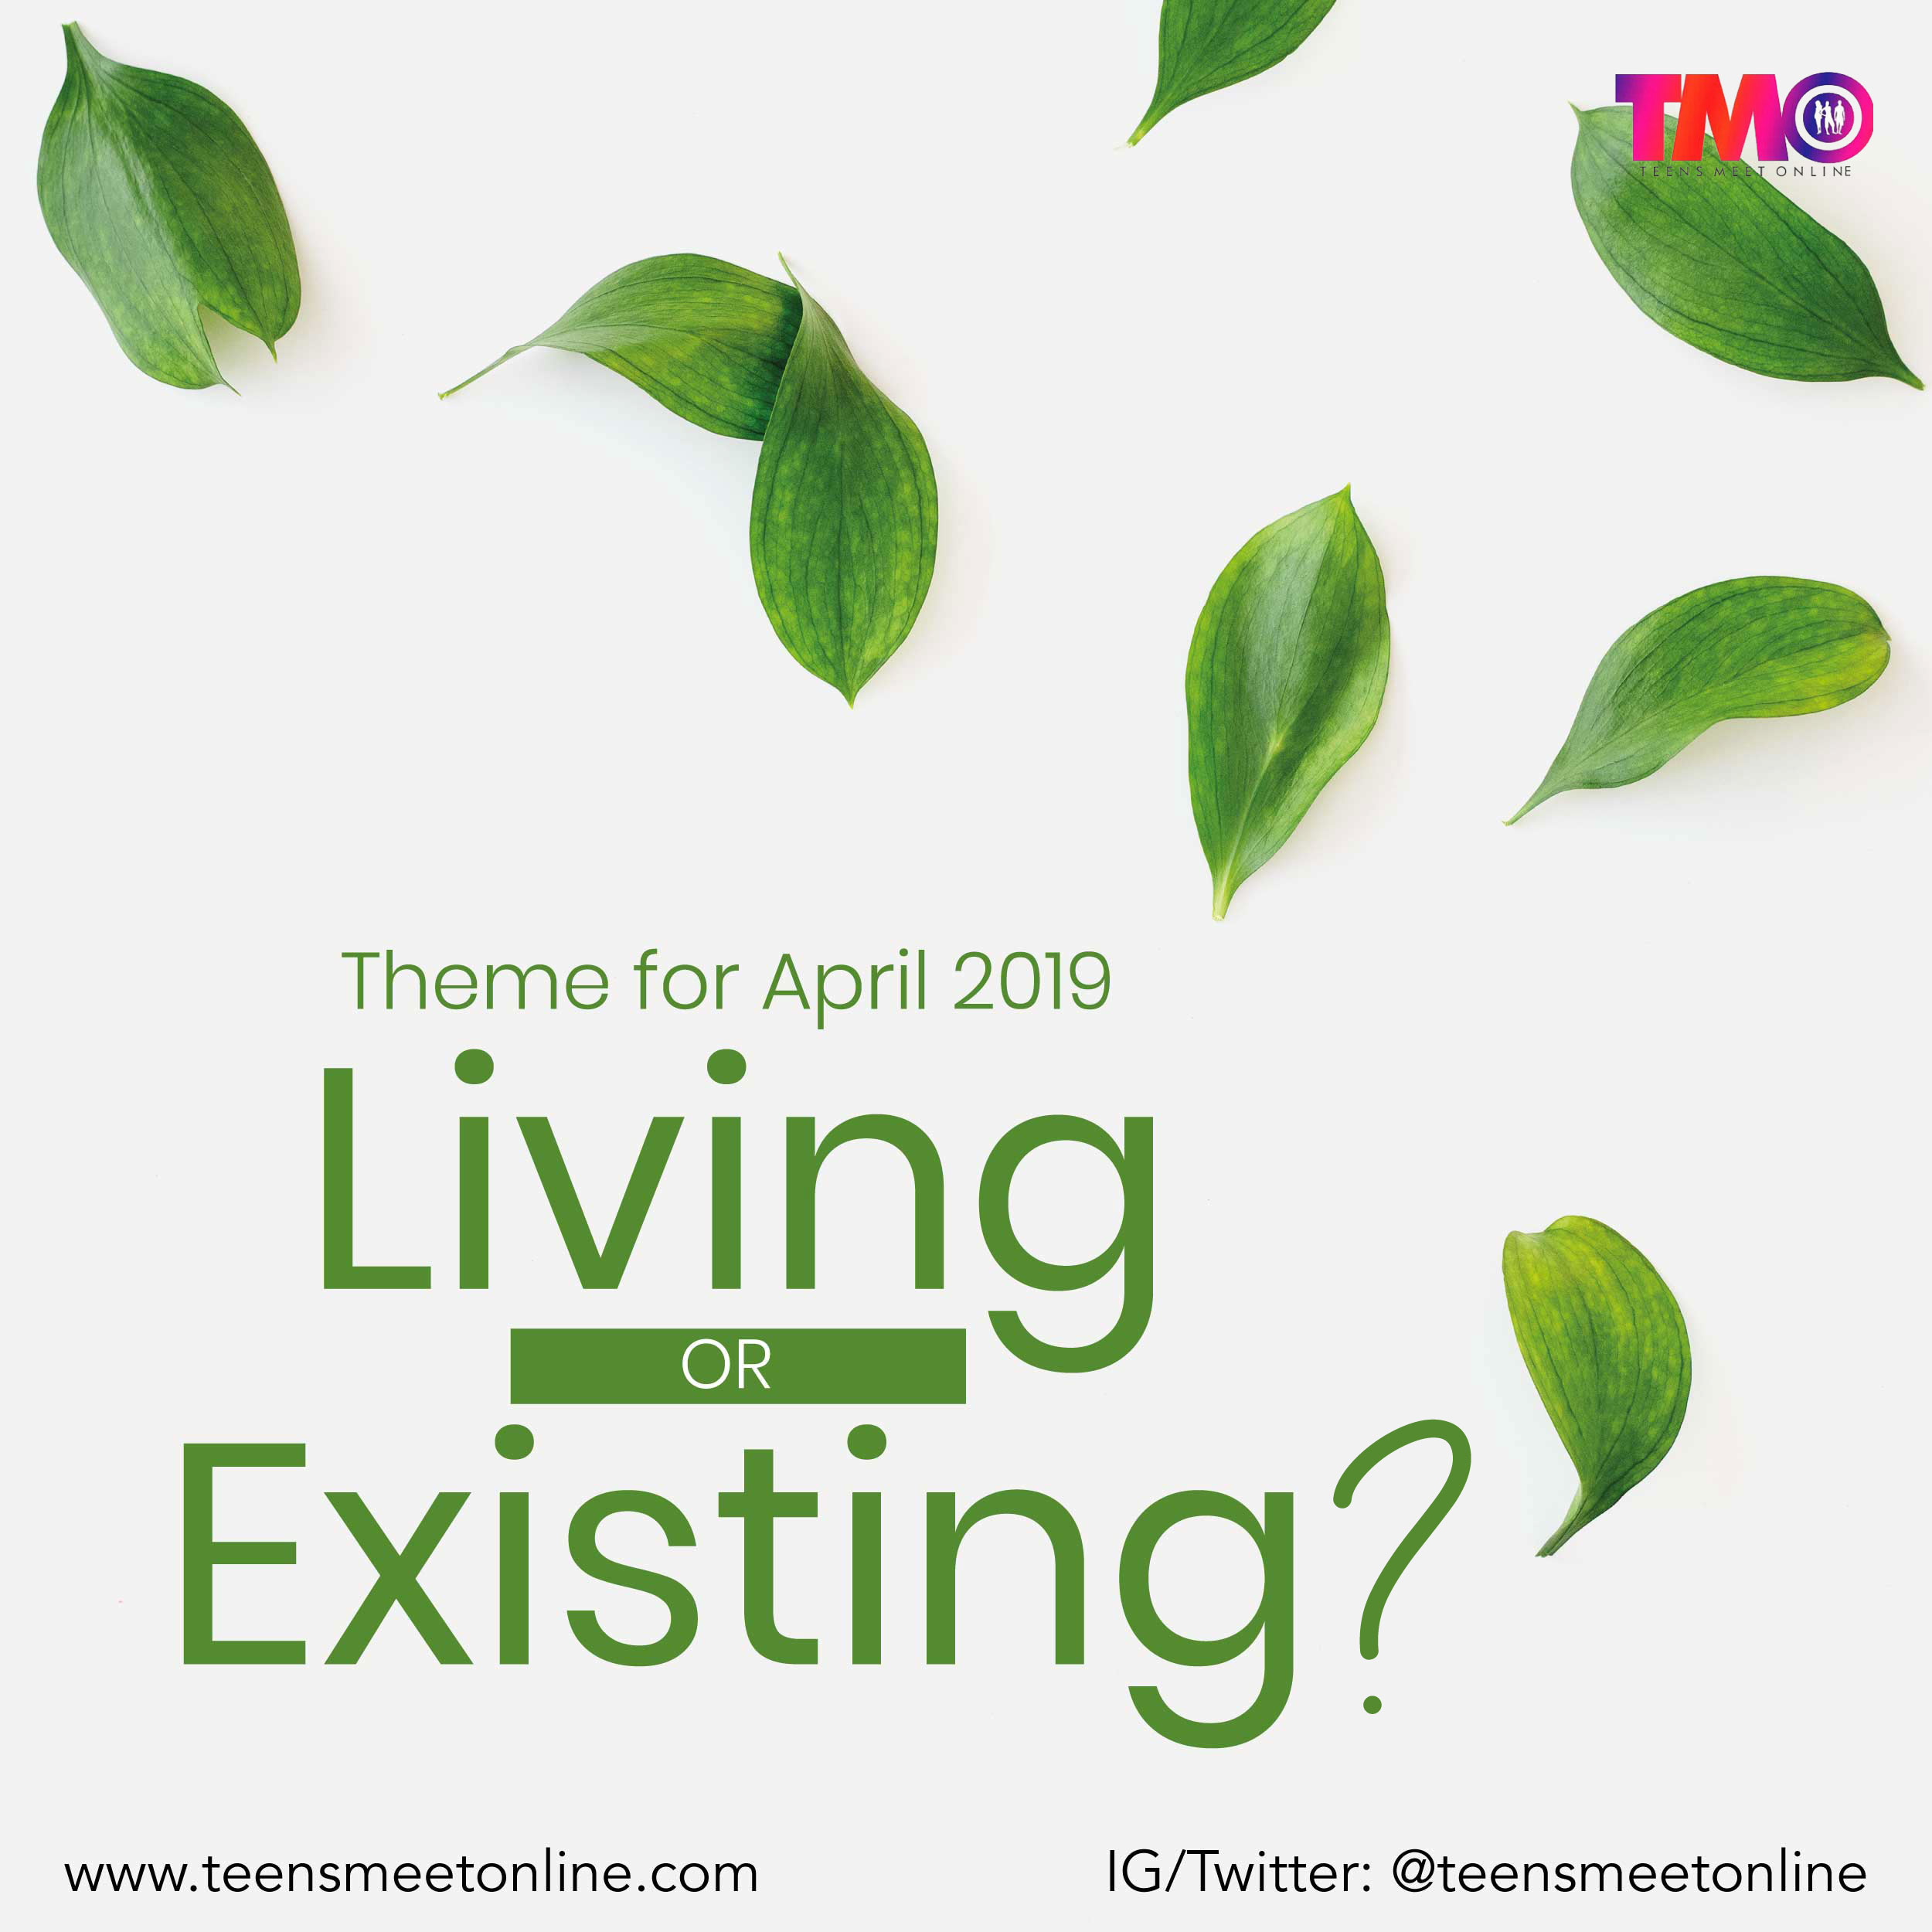 Theme for April: Living or Existing?